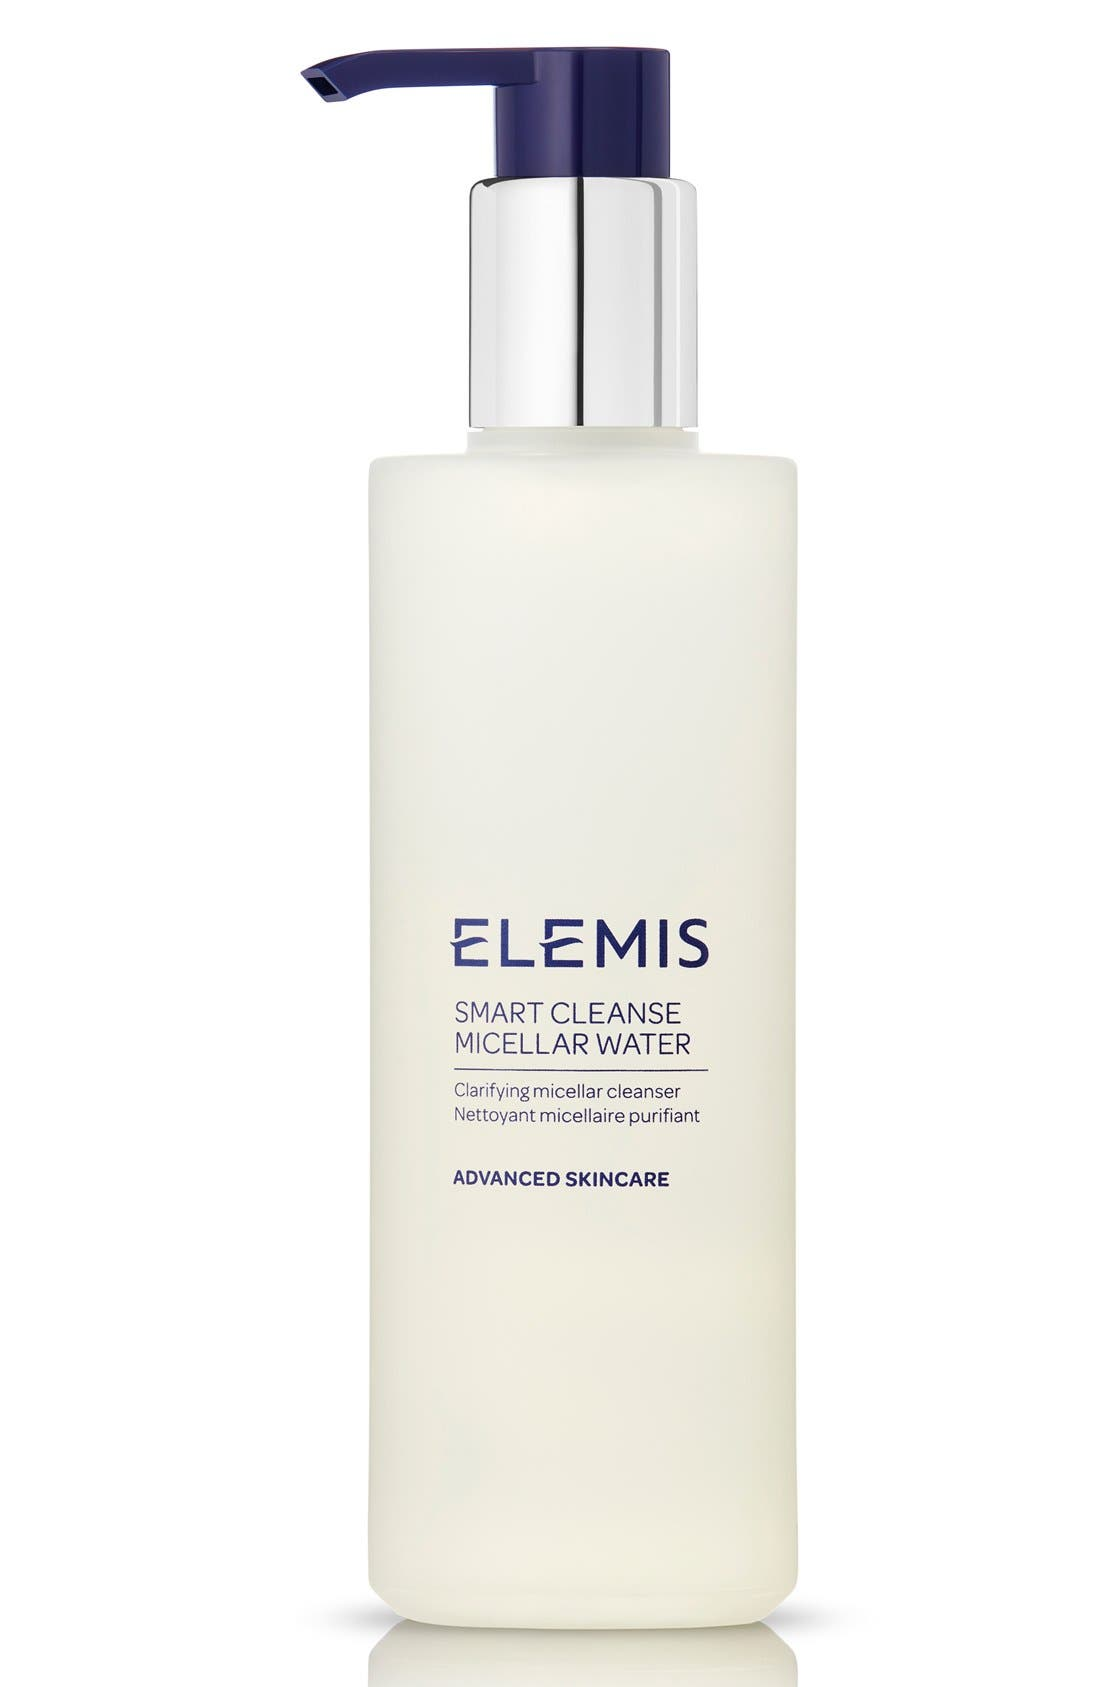 Elemis Smart Cleanse Micellar Water